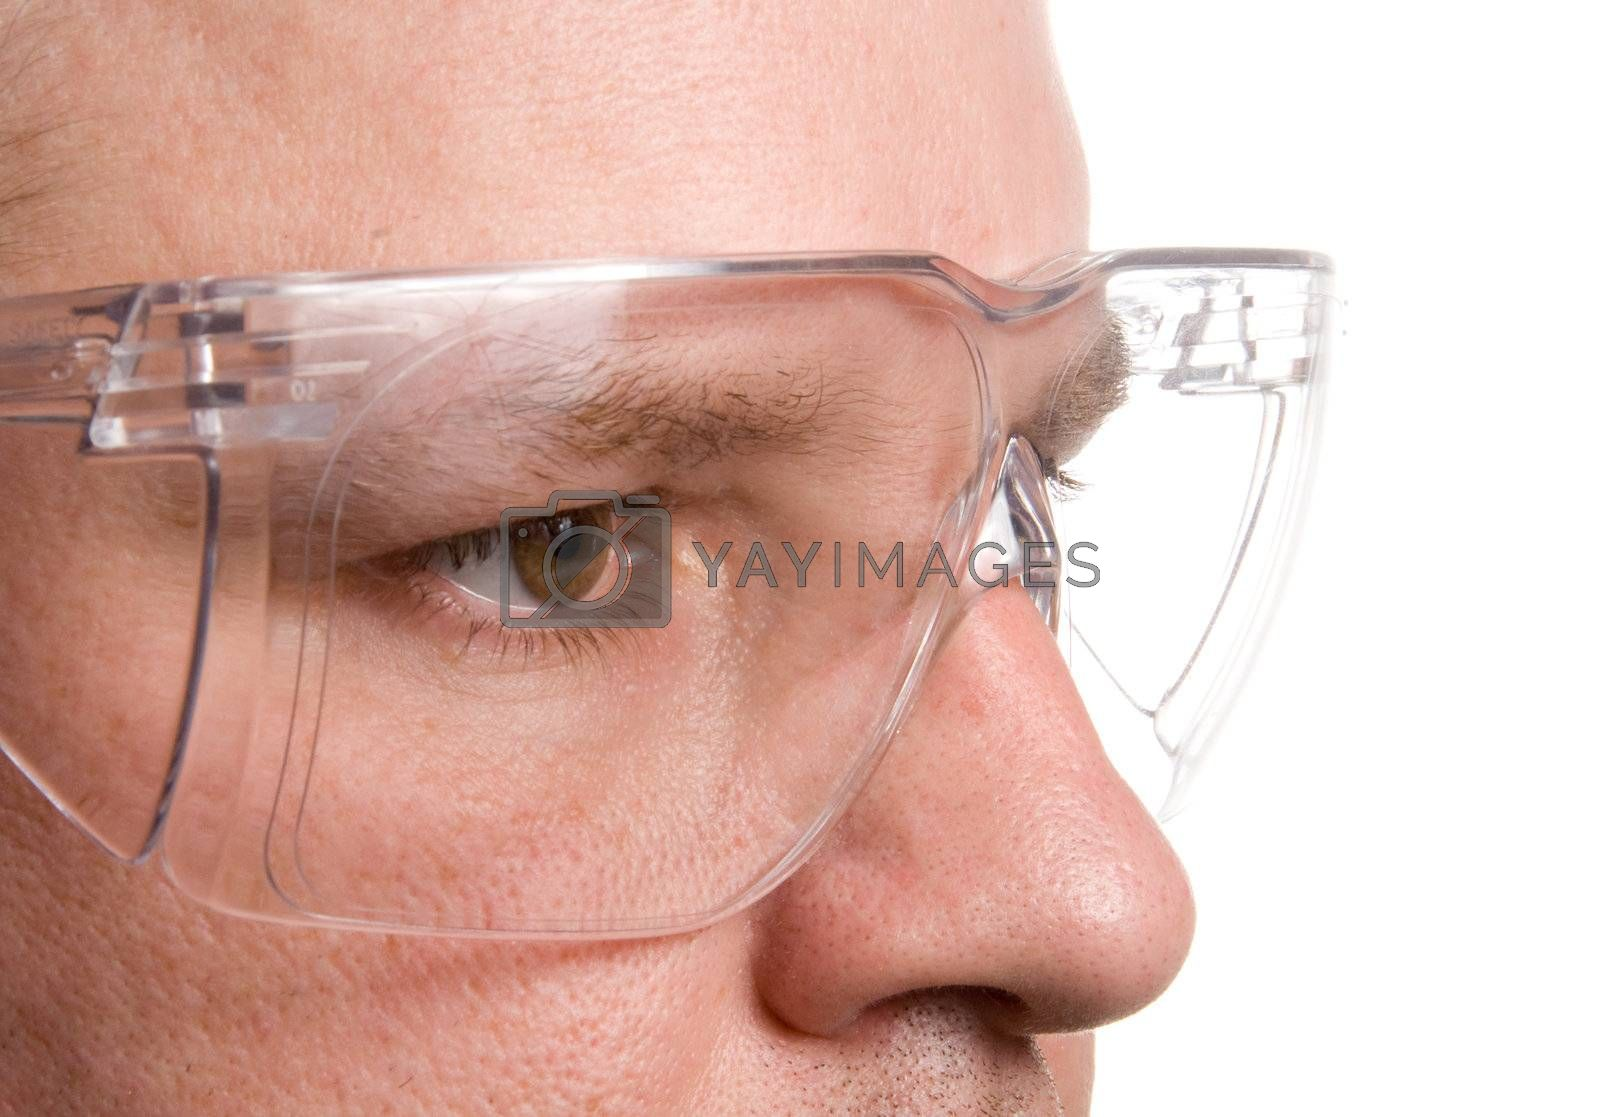 Personal protective equipment known as safety glasses.